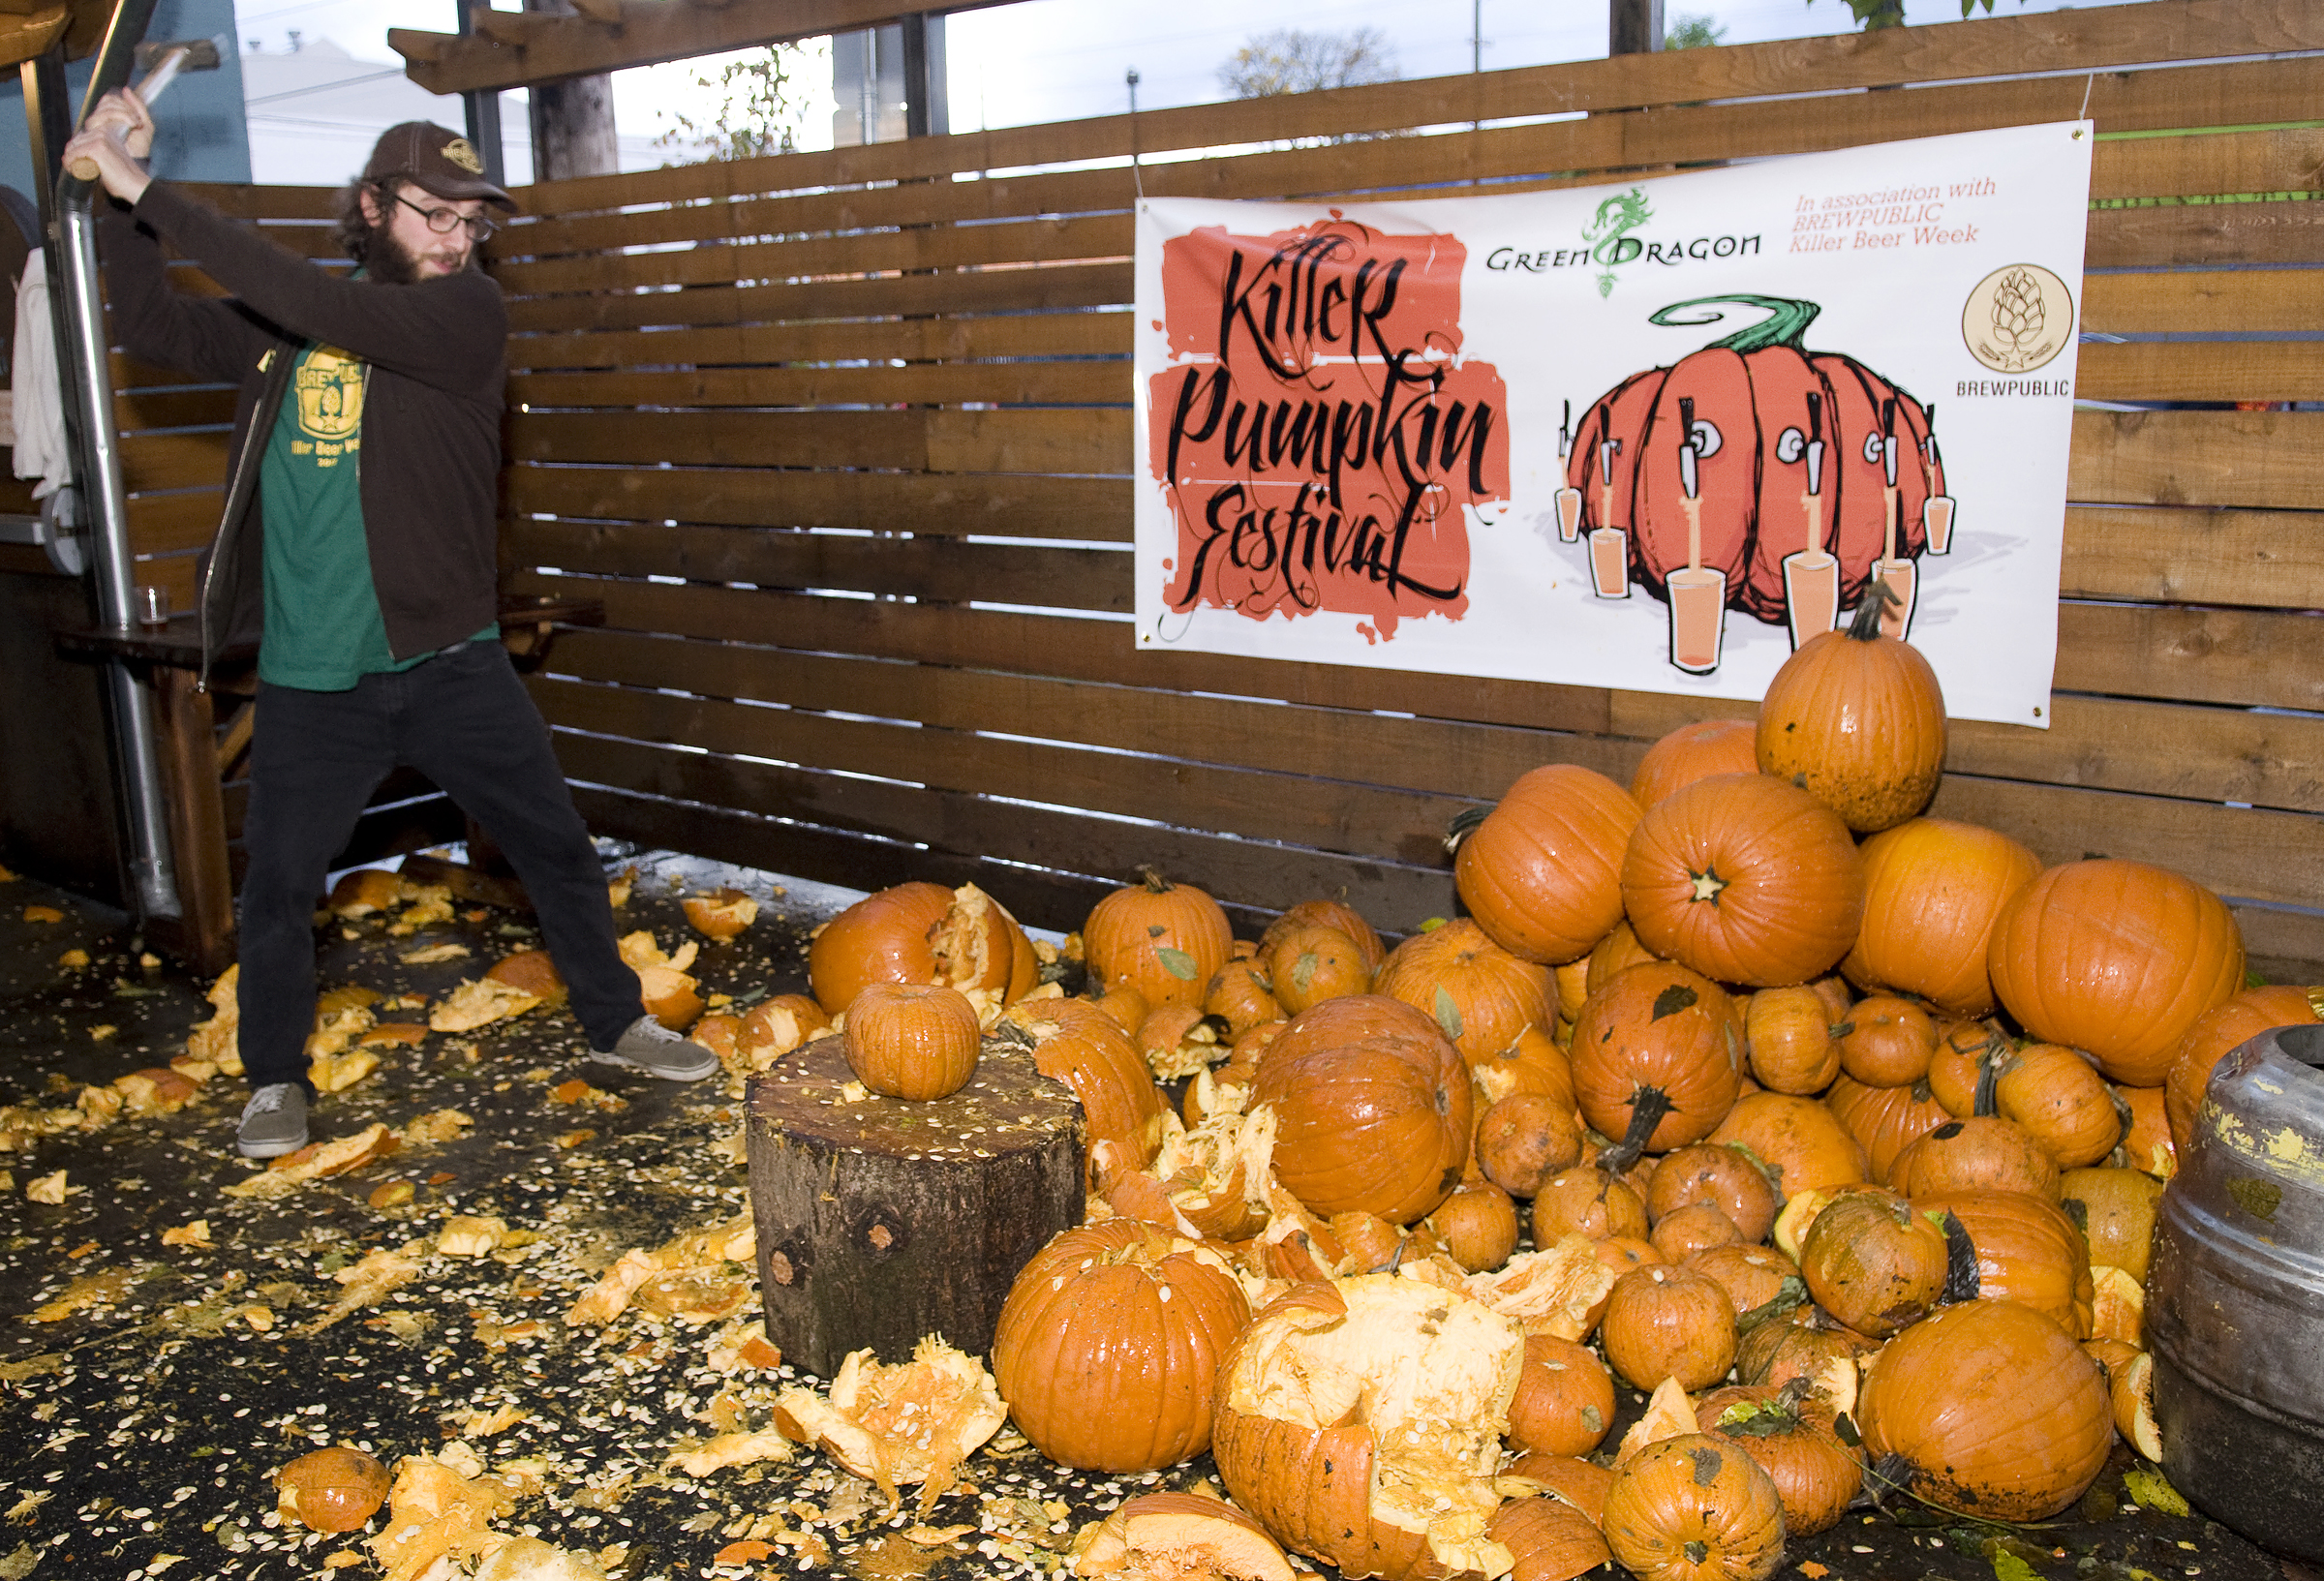 Pumpkin smashing is now a beloved tradition at the Green Dragon and Brewpublic's Killer Pumpkin Fest